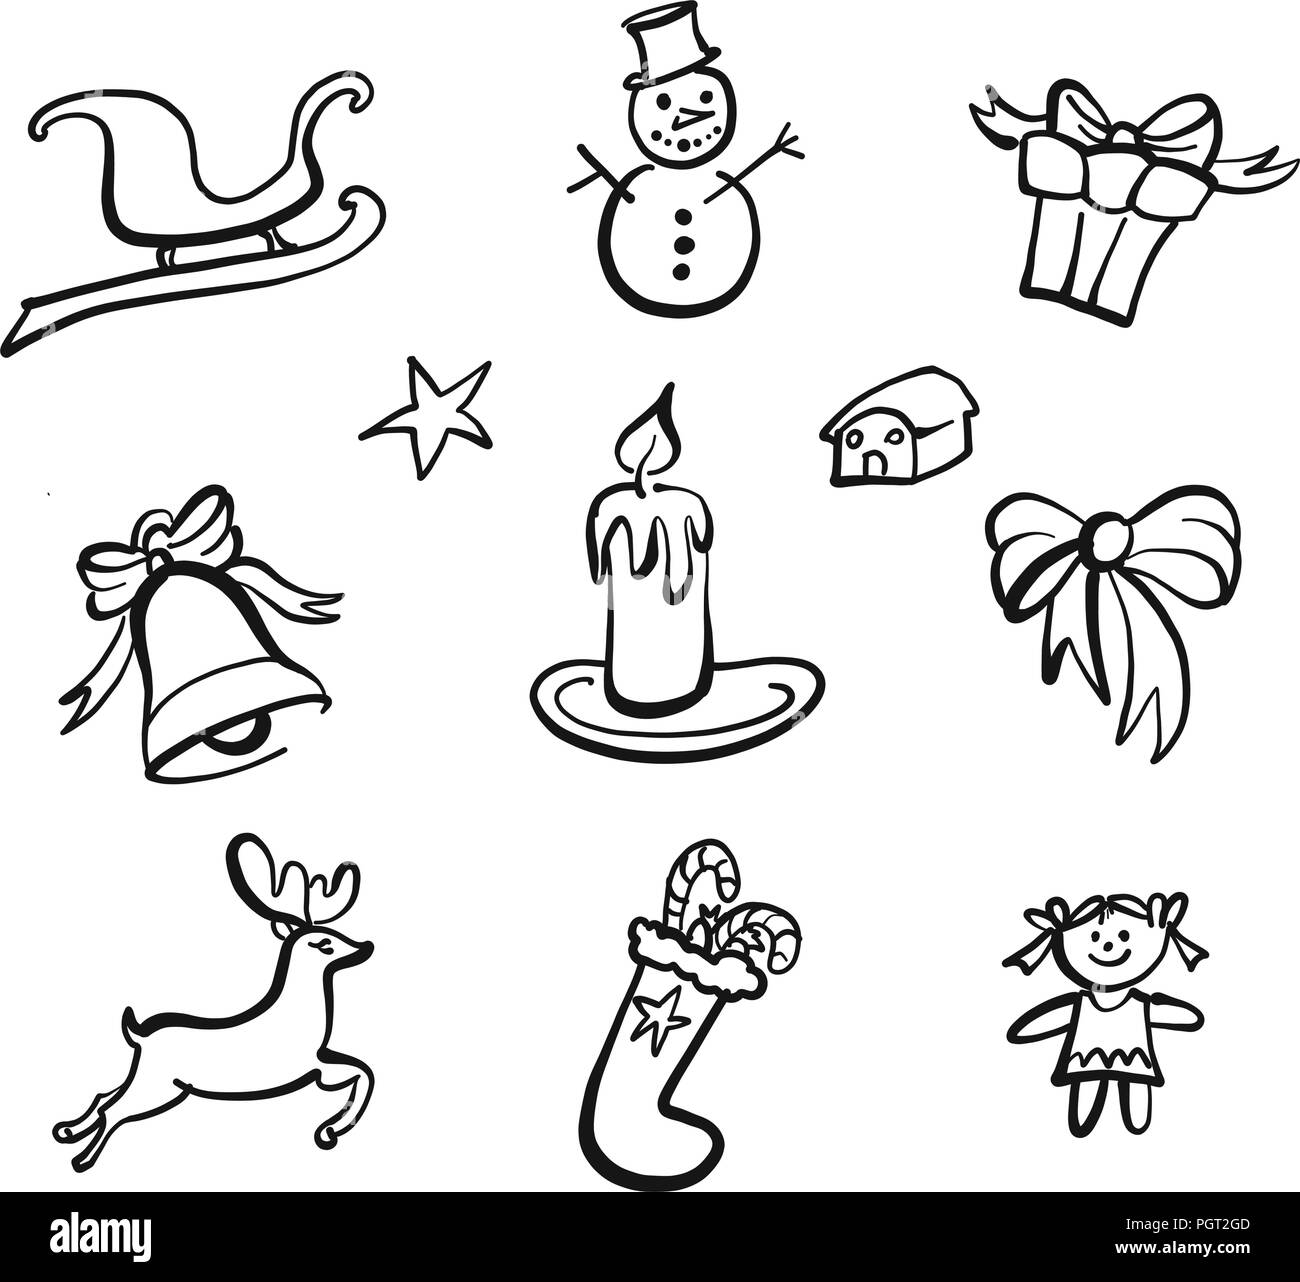 christmas icons drawings nice seasonal calligraphic artwork for greeting cards hand drawn vector sketch